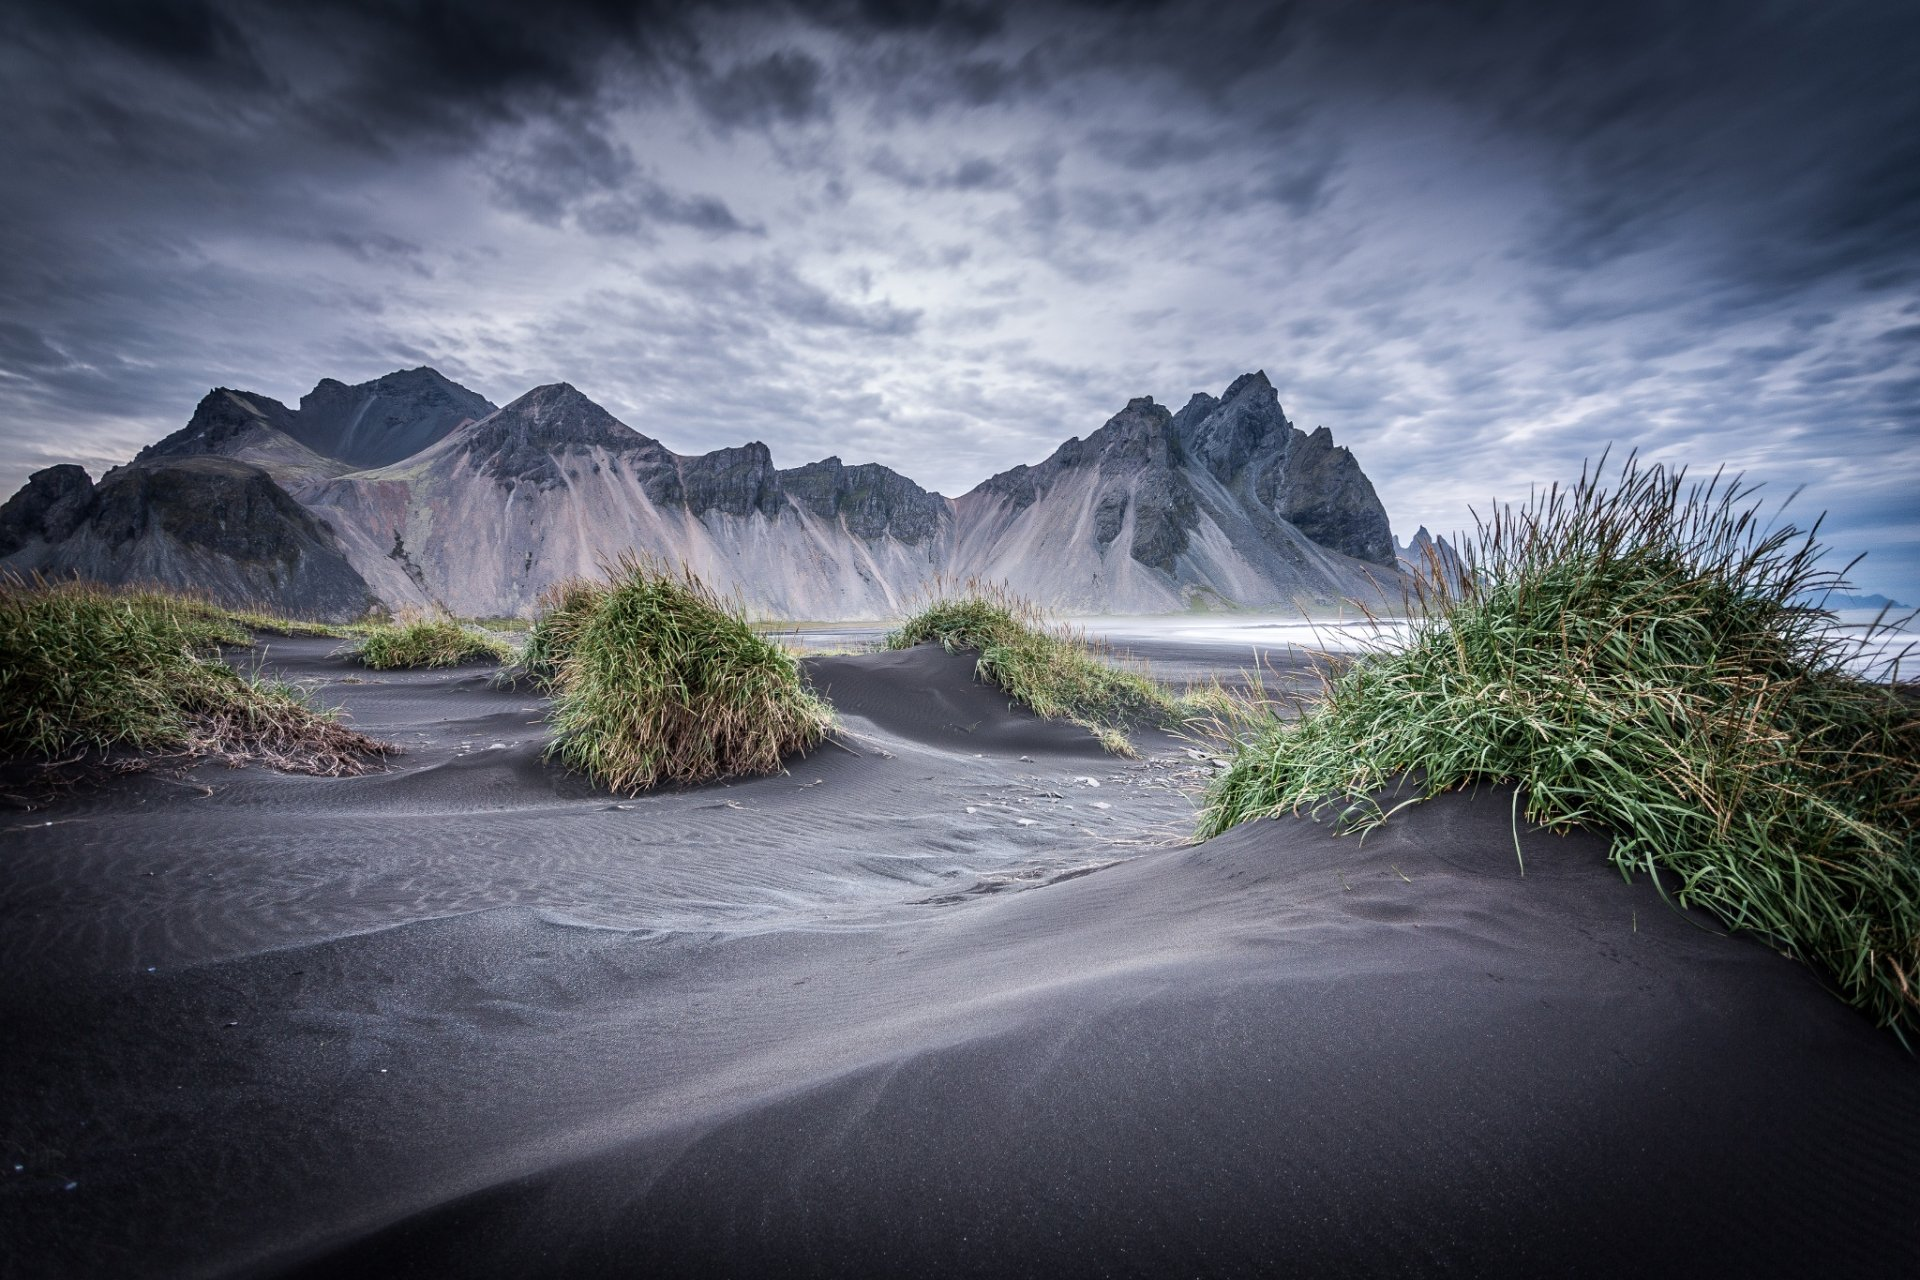 Hd Earth Wallpaper Widescreen Dark Iceland Full Hd Wallpaper And Background 2048x1365